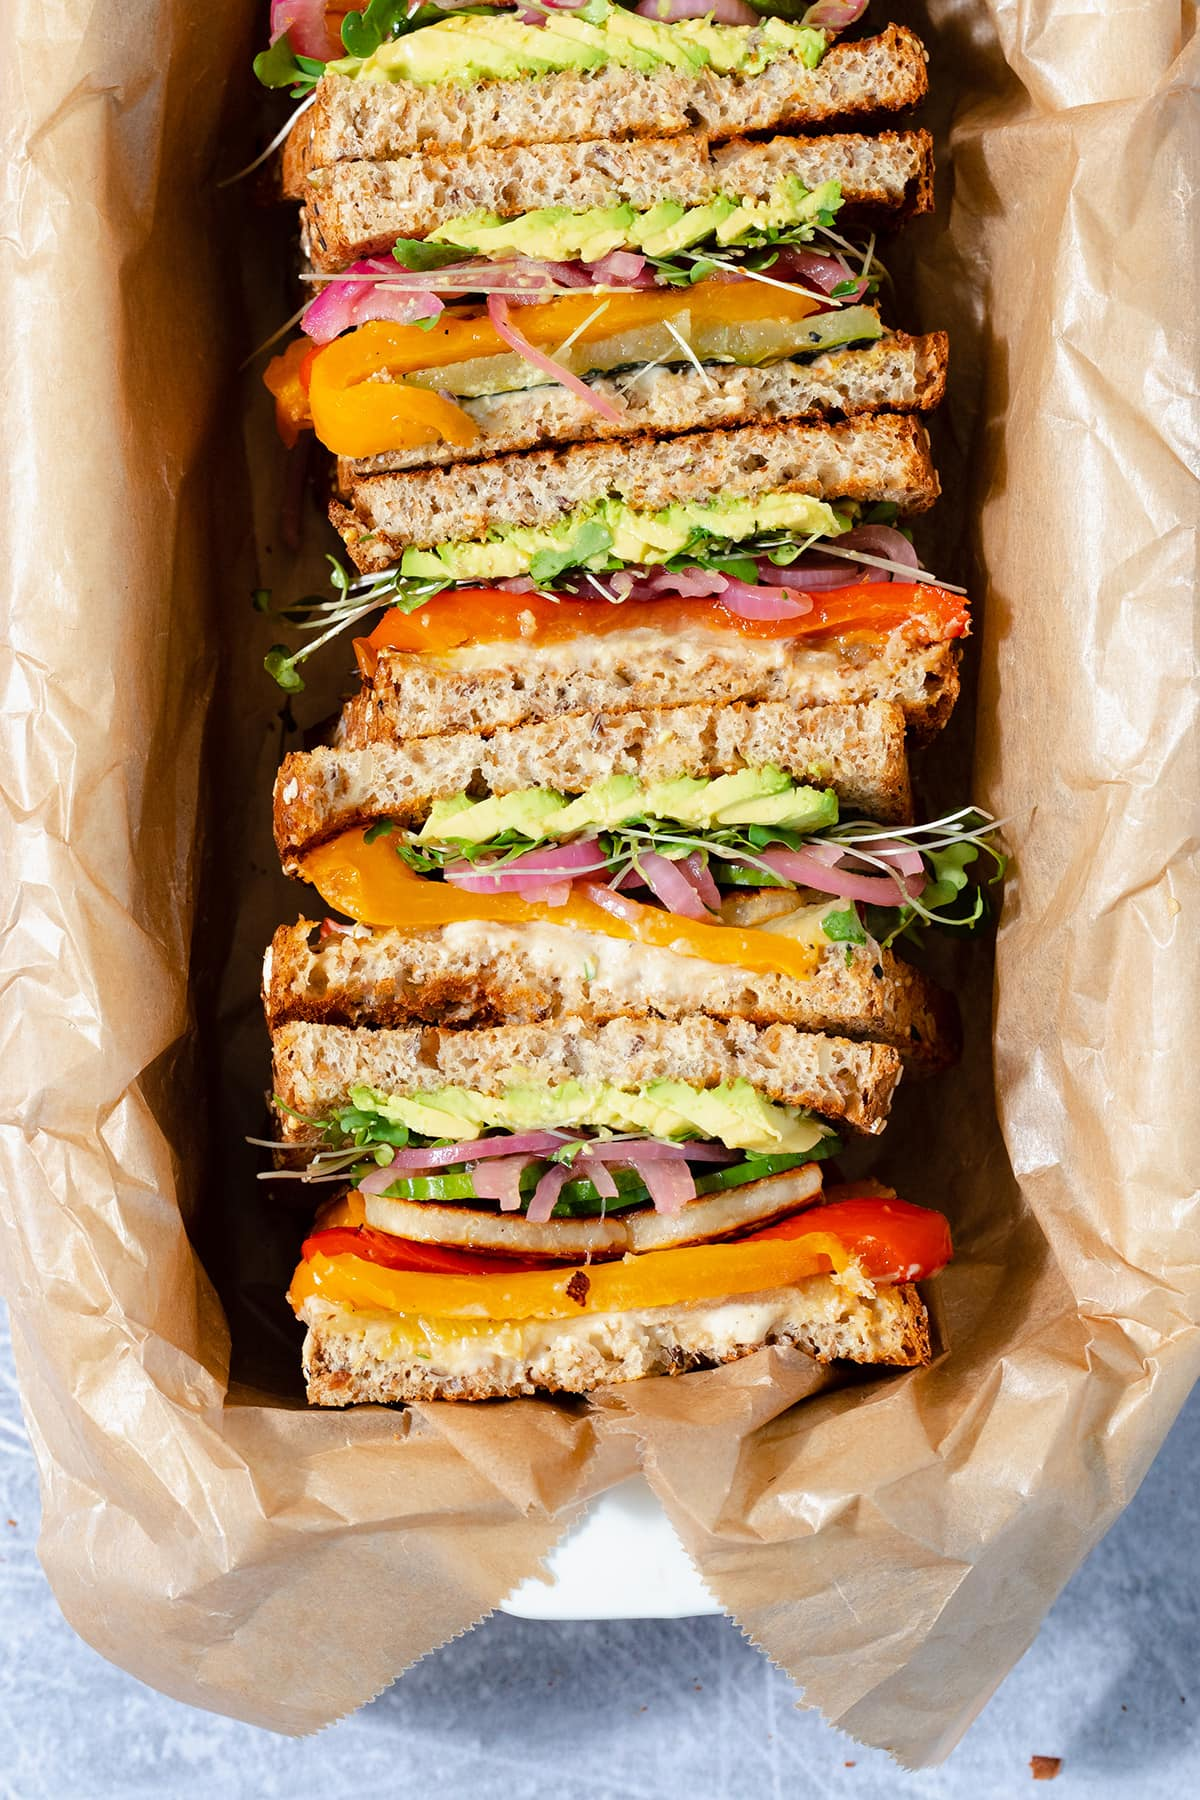 Halloumi sandwiches cut in half and arranged cut side up in a baking dish lined with parchment paper.